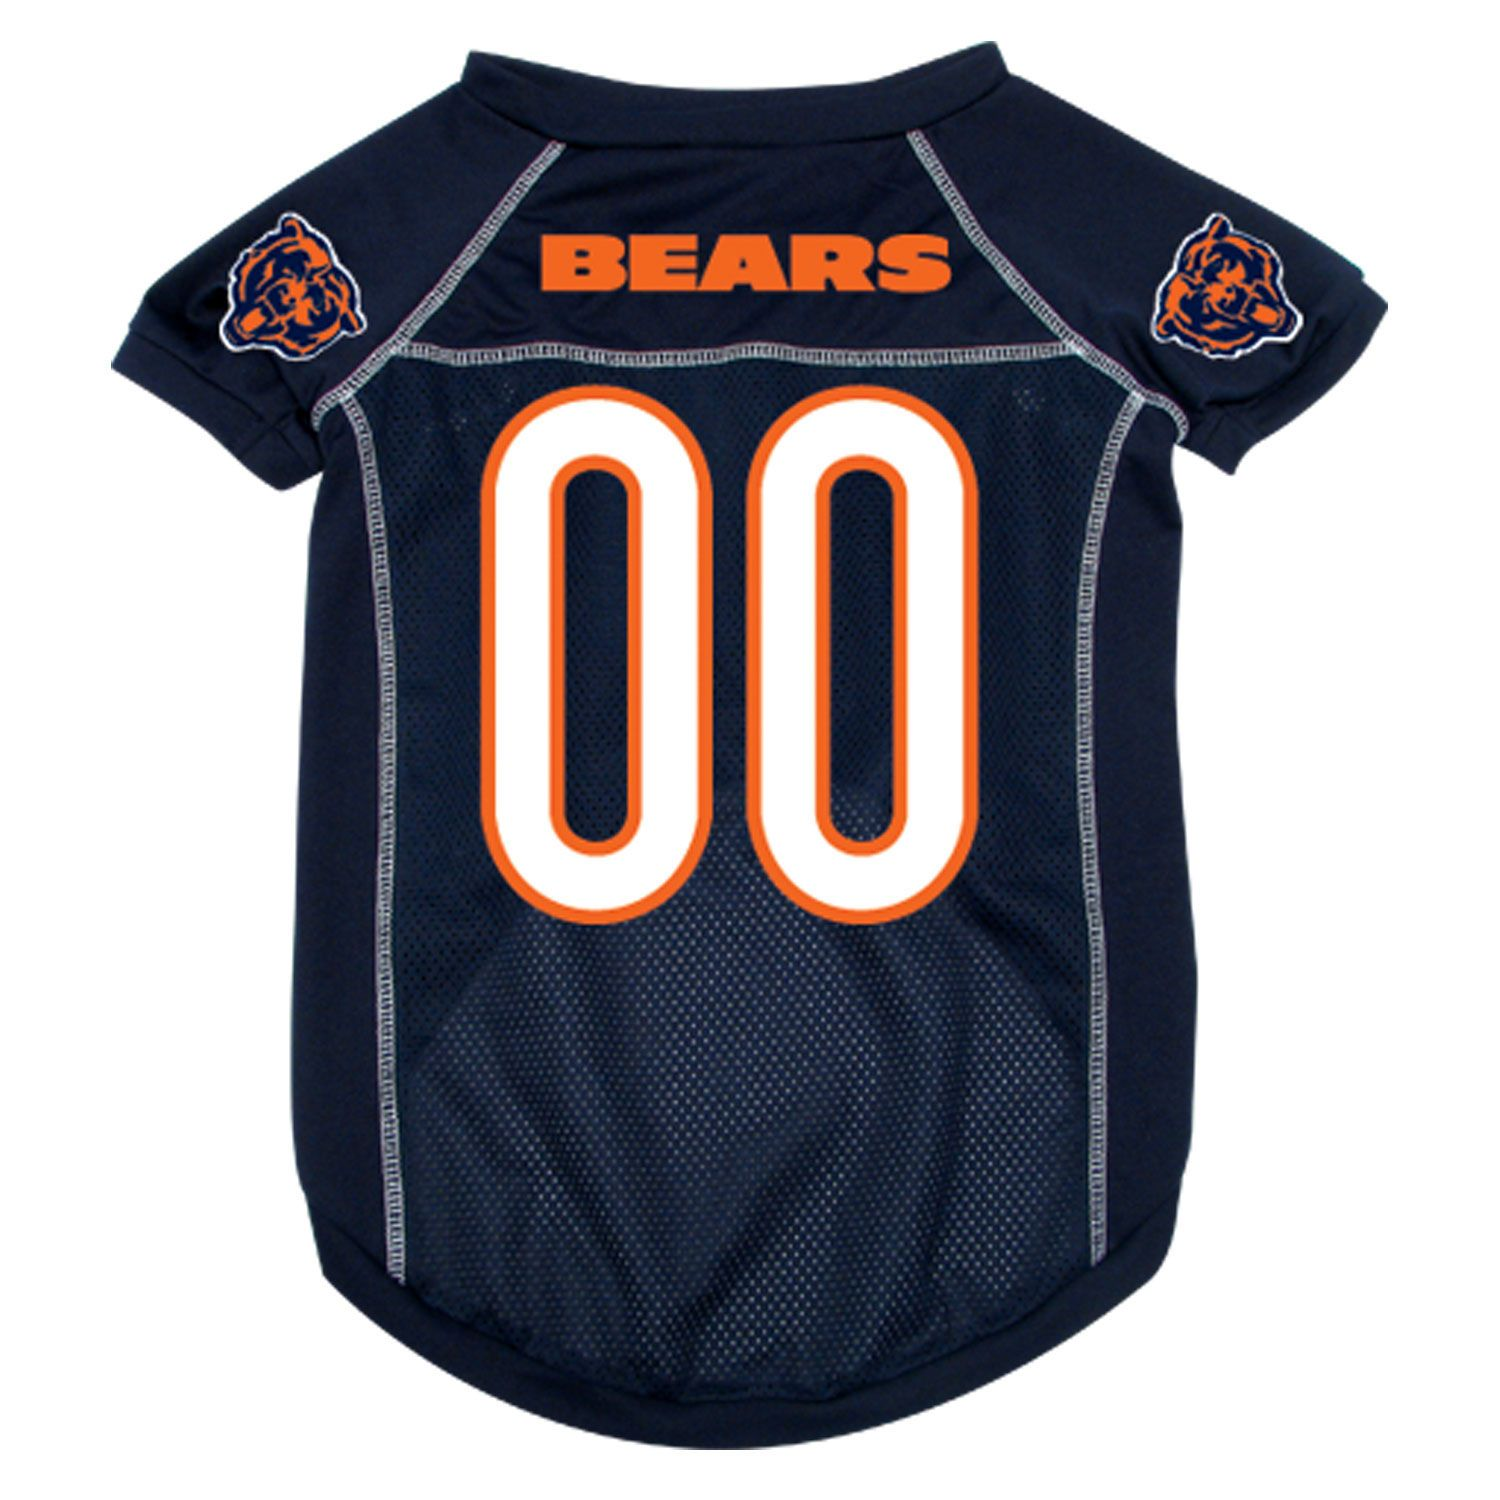 996593aff Chicago Bears NFL Pet Jersey